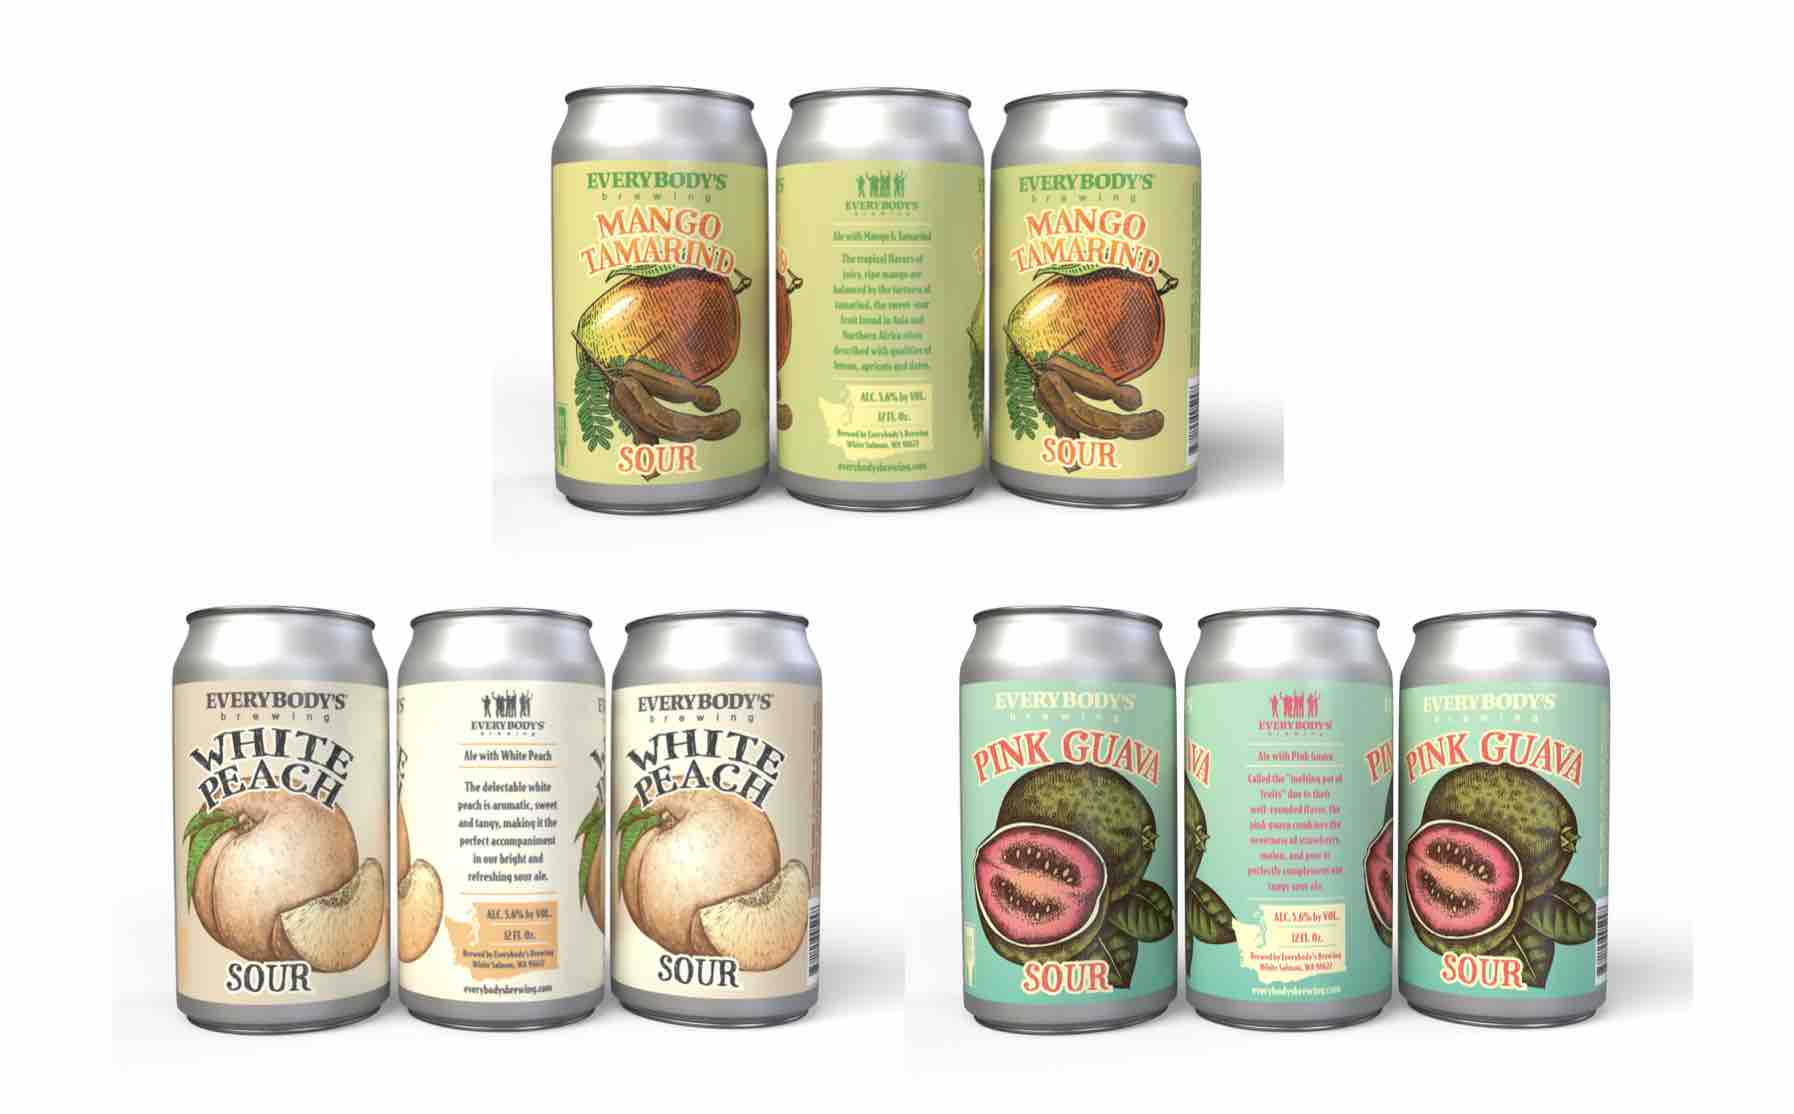 Everybody's Brewing to Release Summer Sour Series with Mango Tamarind Sour Ale, Pink Guava Sour Ale, and White Peach Sour Ale.